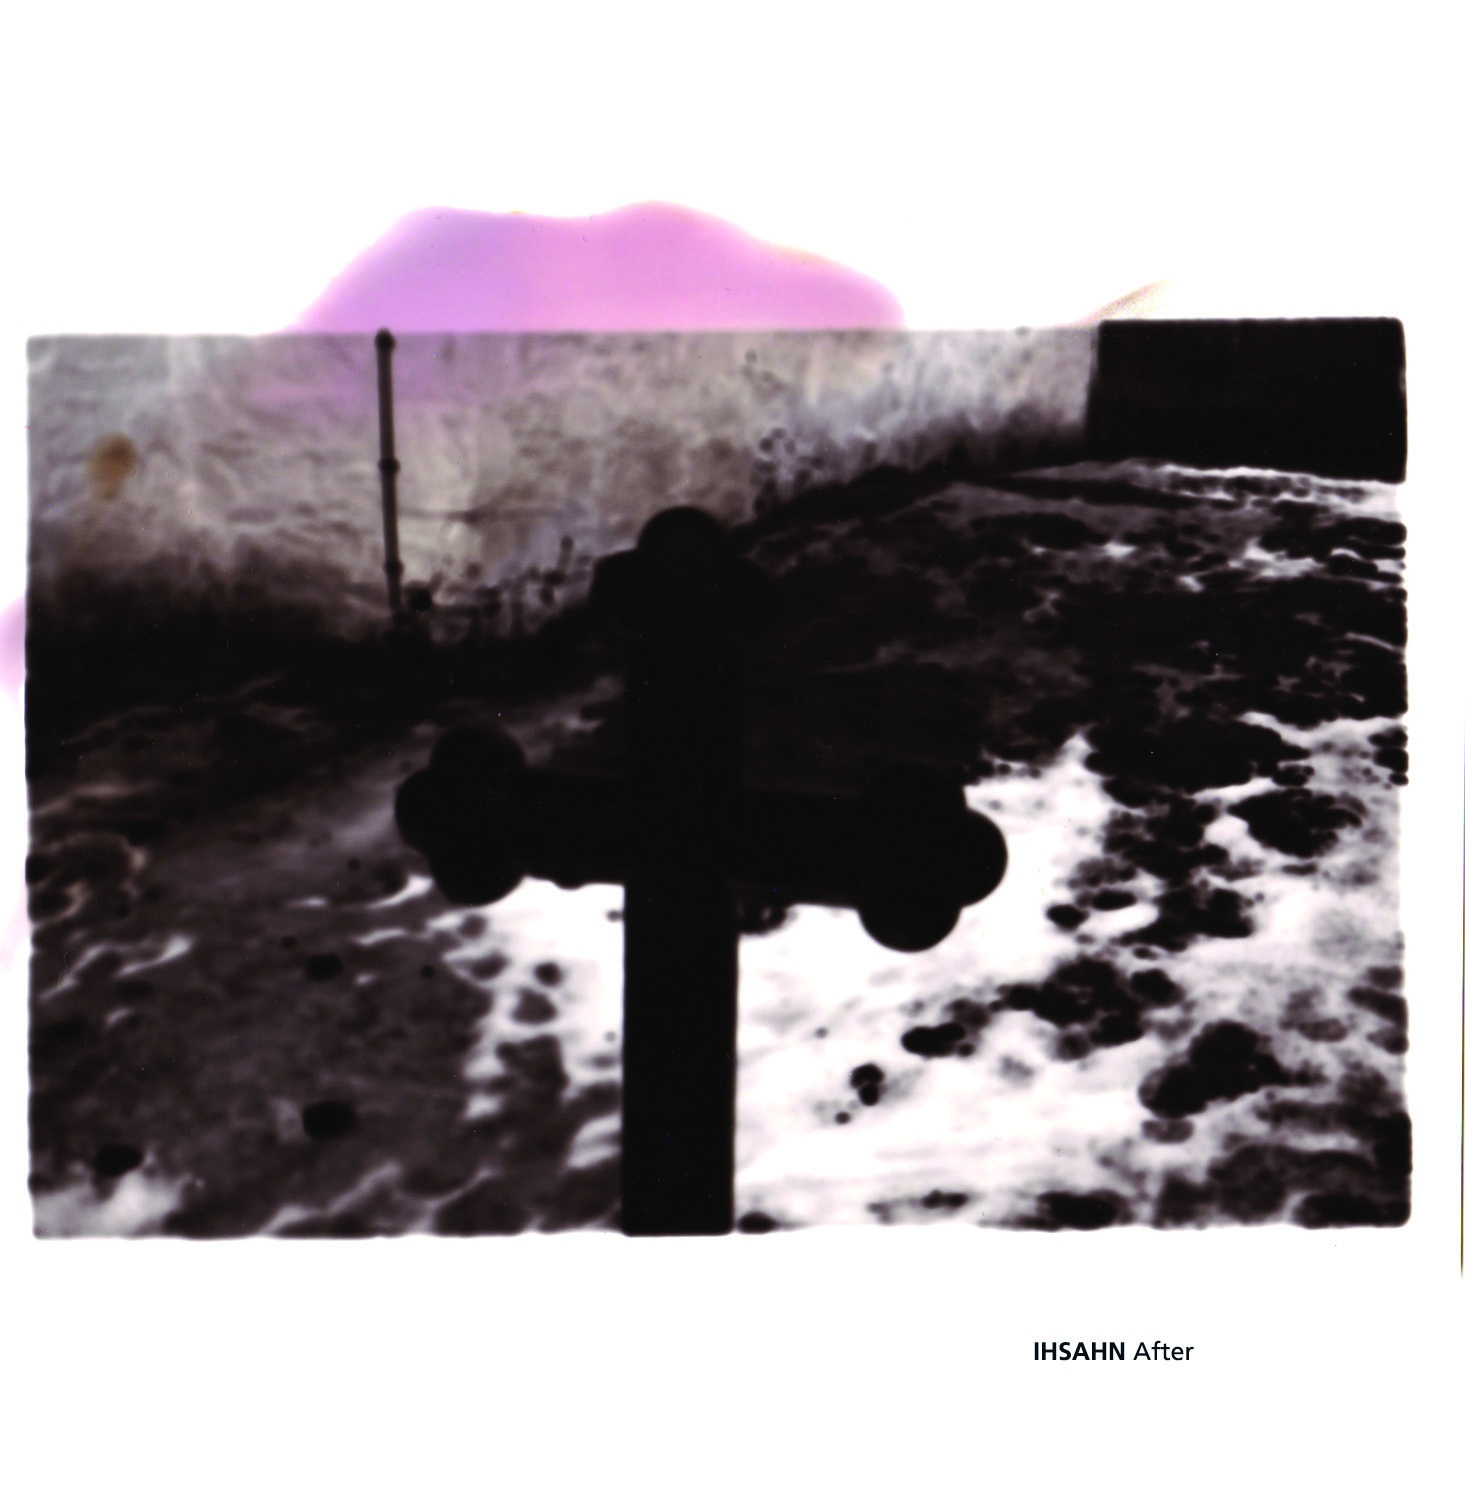 Ihsahn – After Review